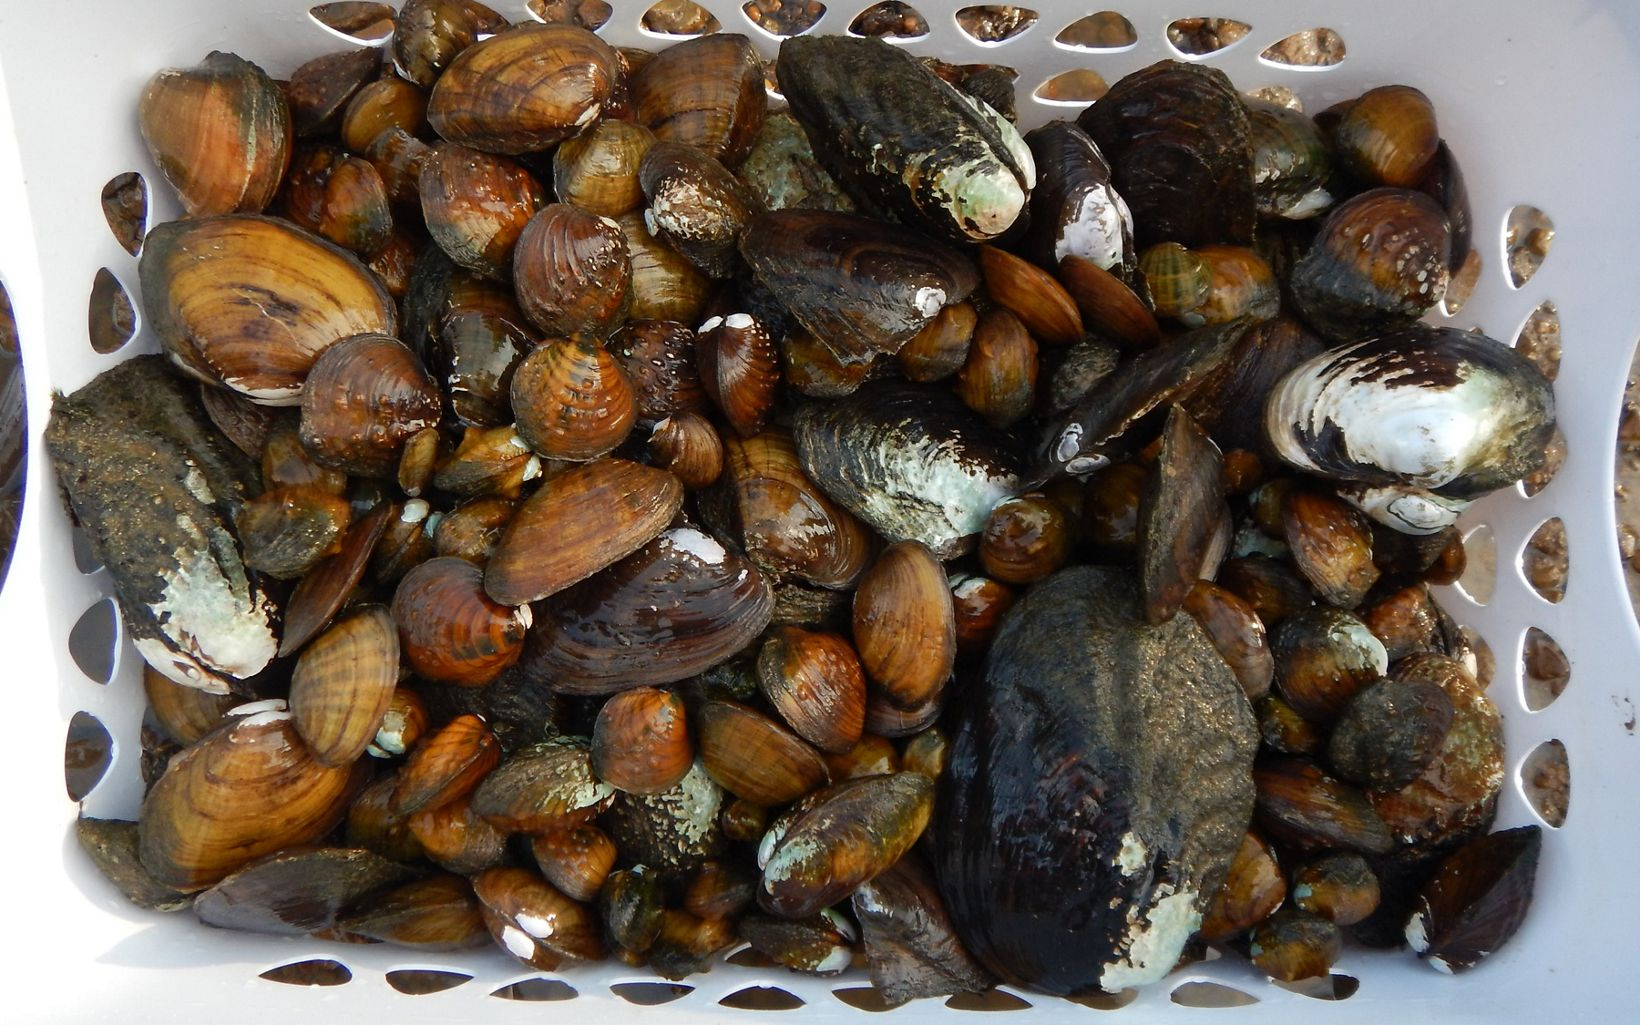 An assemblage of mussels is stored in a laundry basket.